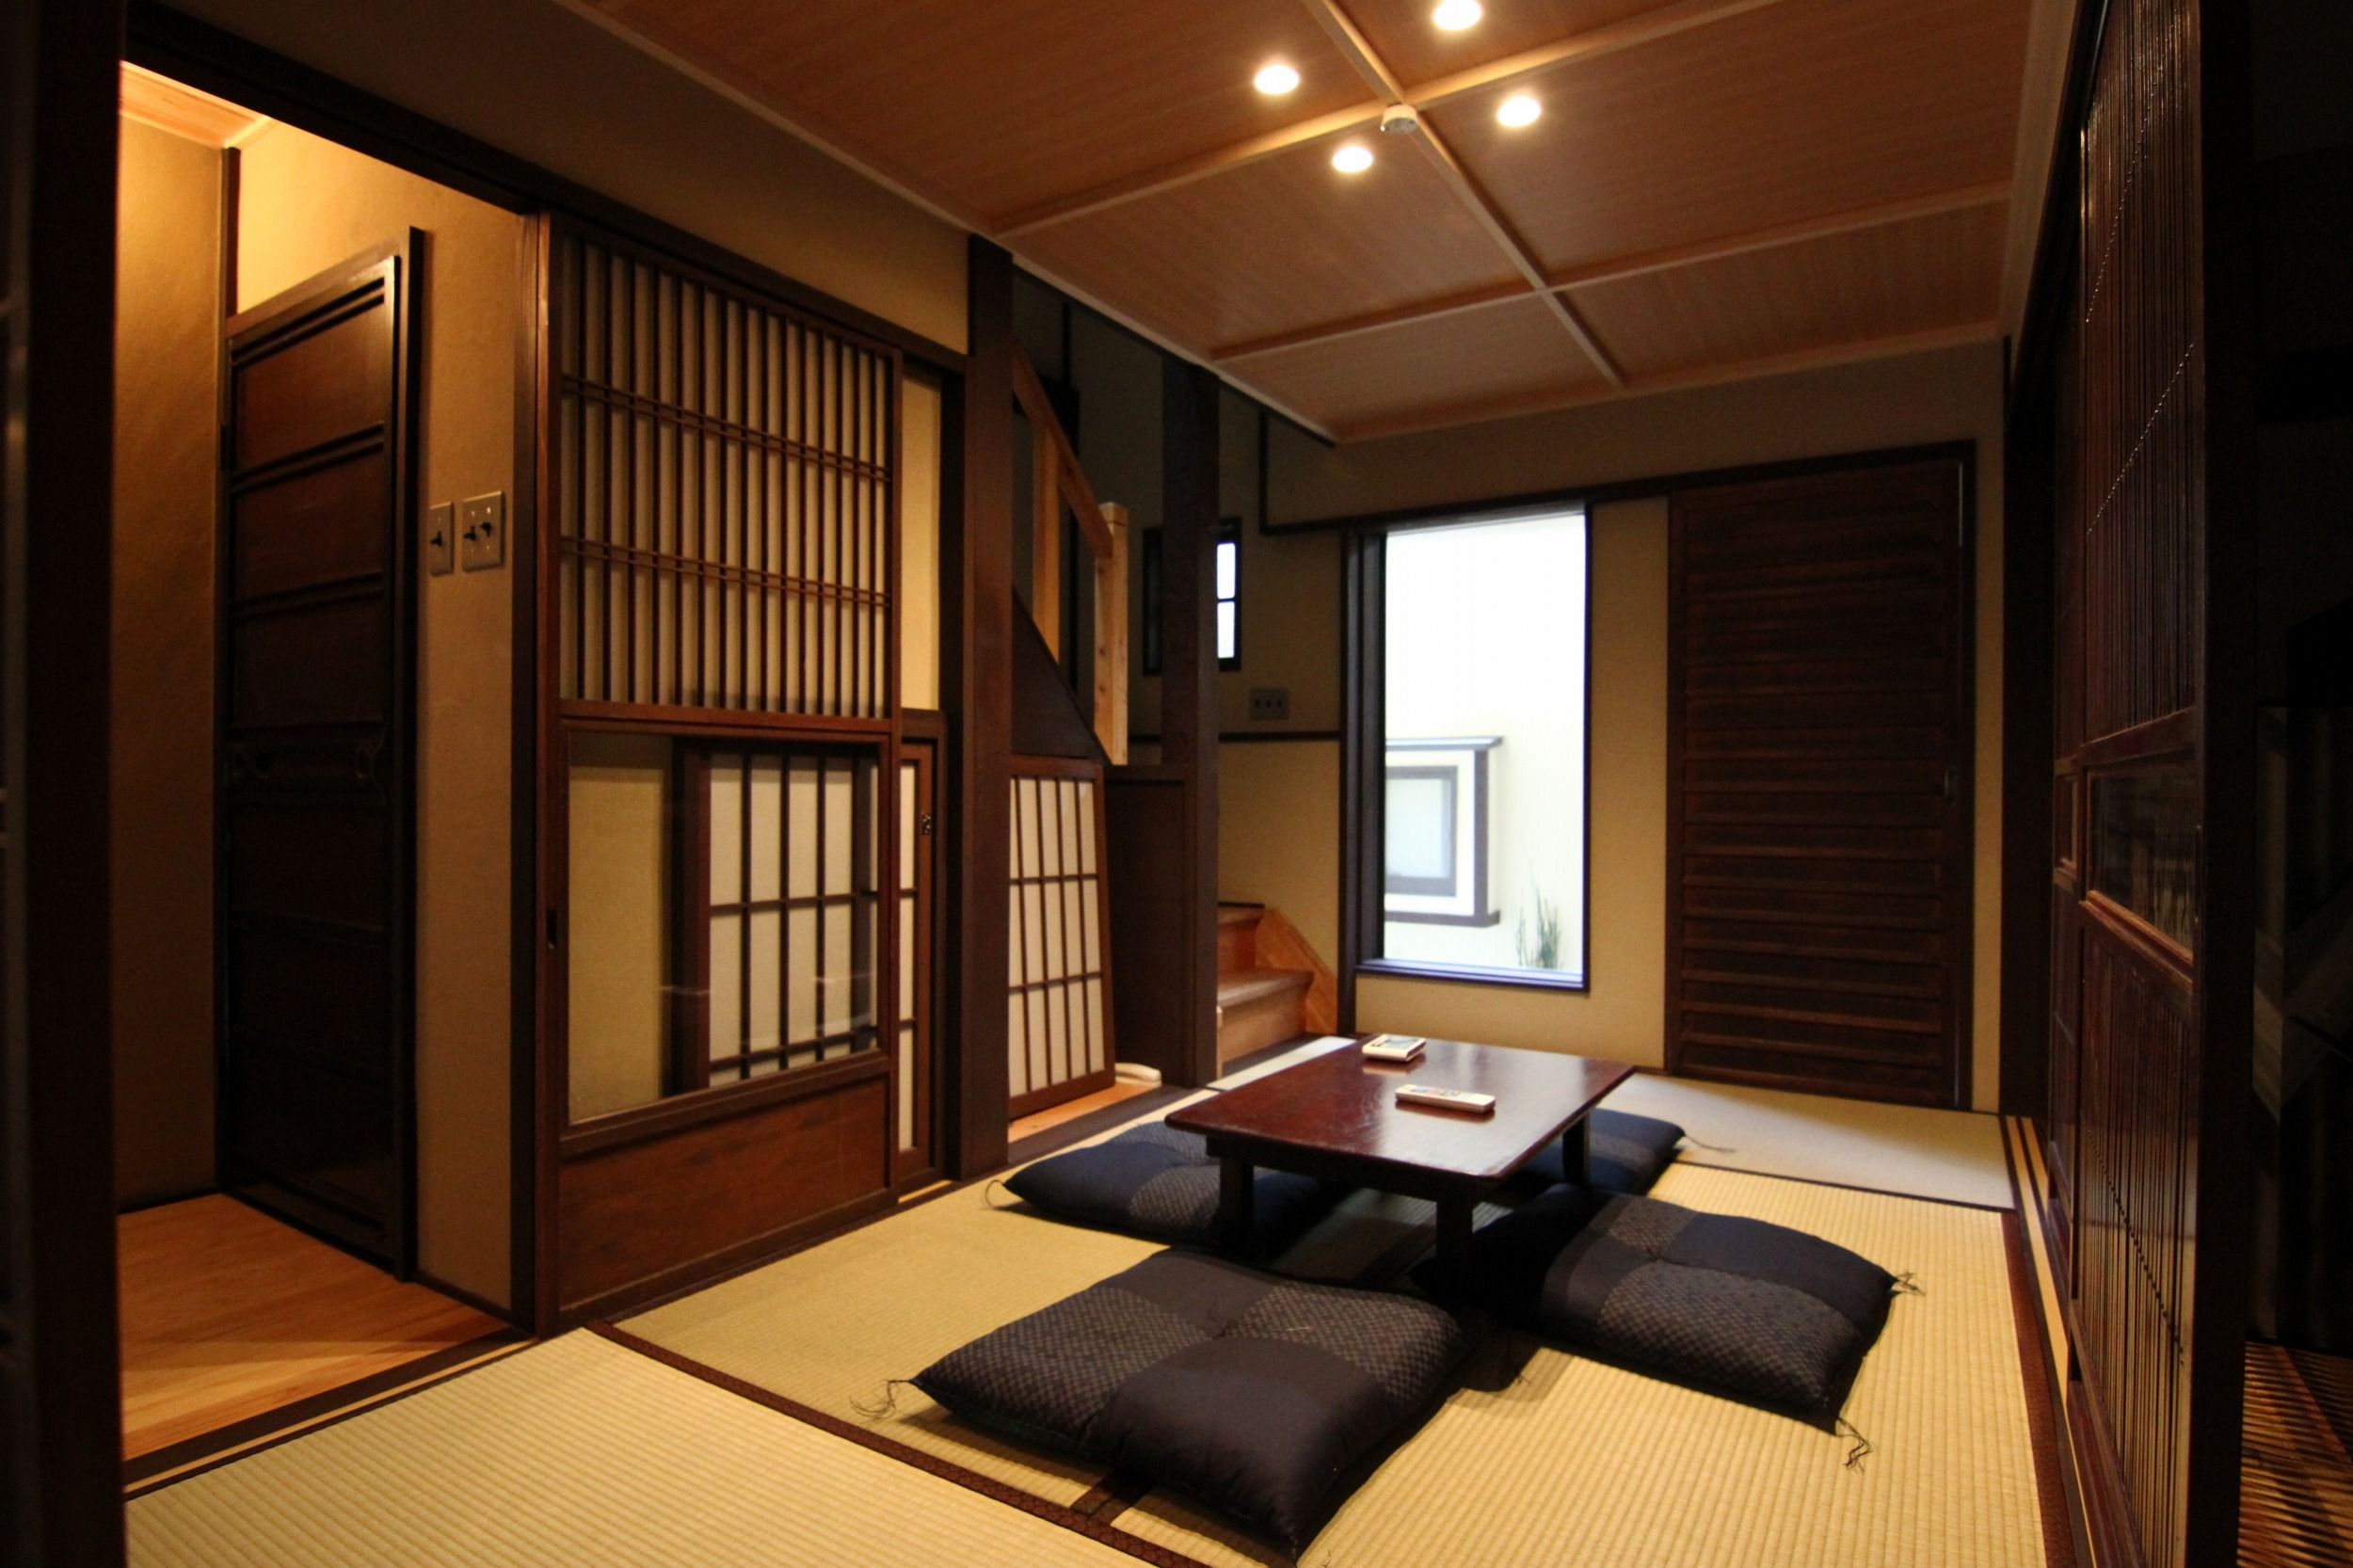 Adorable Japanese Living Room Interior And Furniture Ideas Beautiful Built In Hidden Storage Cabinet With